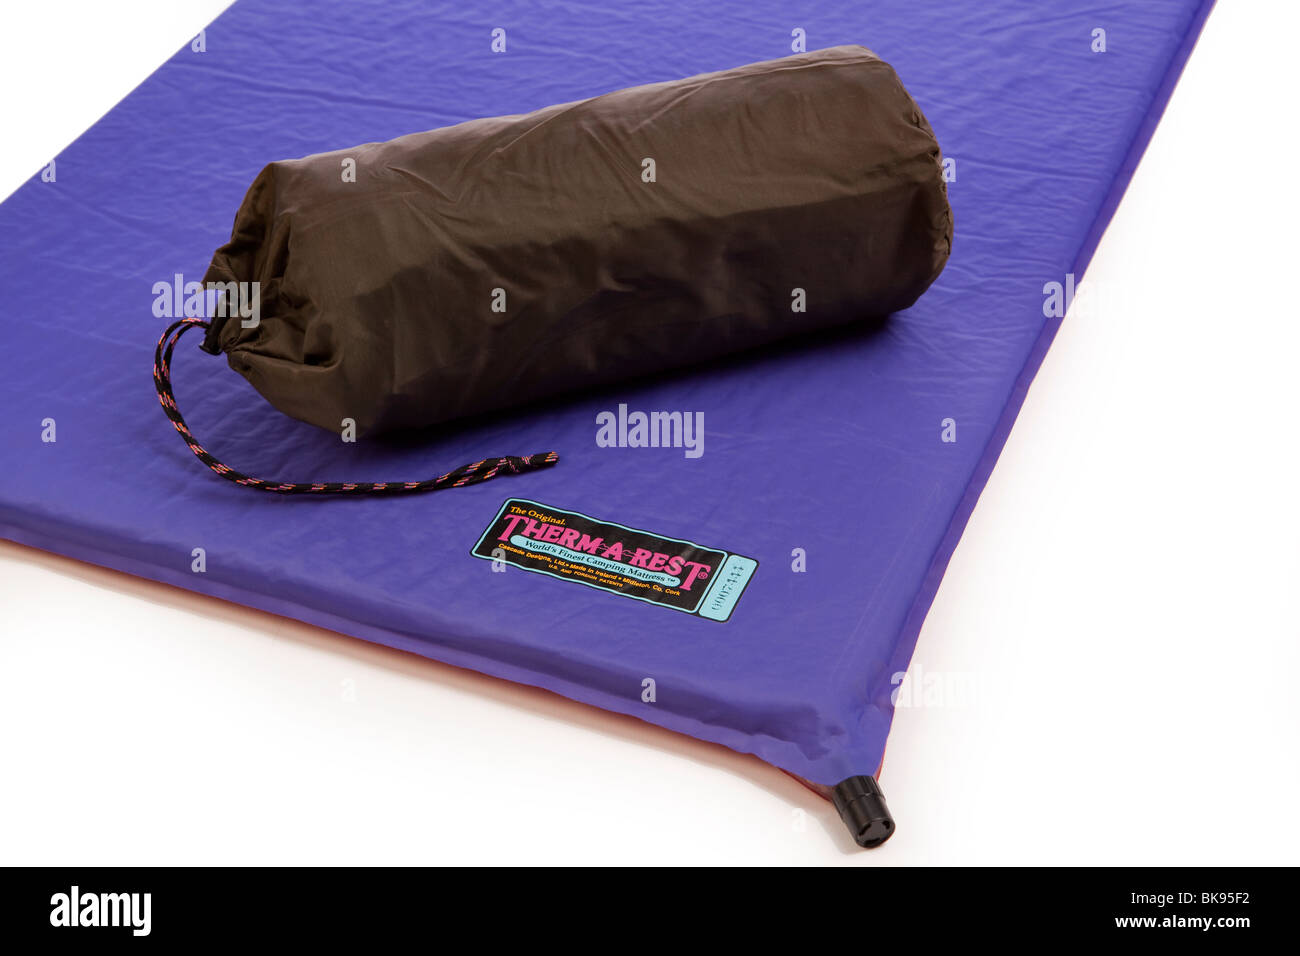 camping equipment therm a rest self inflating camping mattress inflated and packed in compact sack